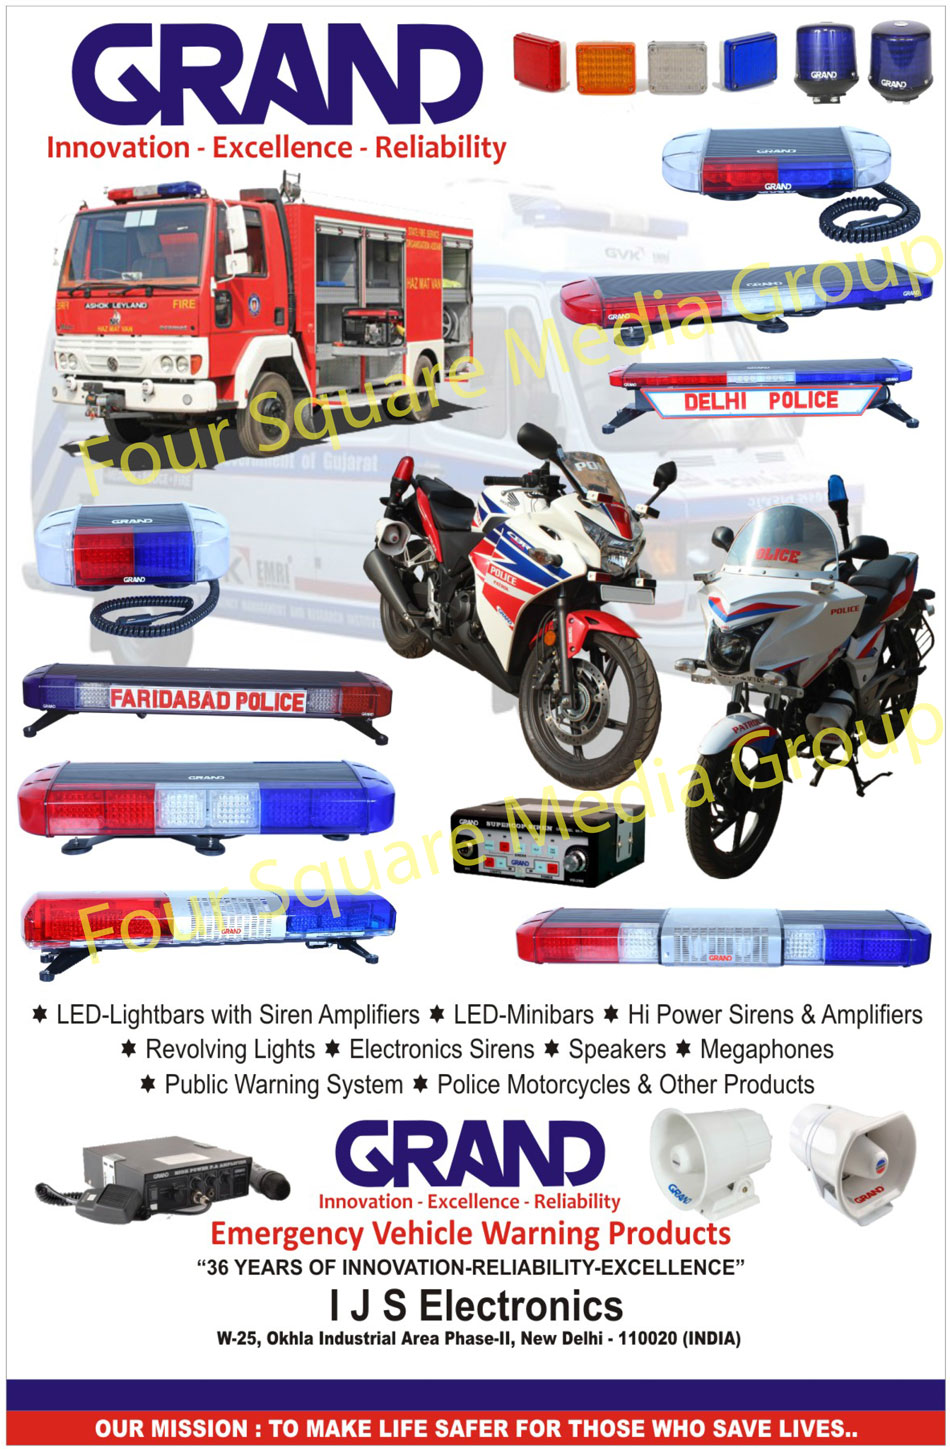 Led light bars with siren amplifiers led mini bars hi power revolving lights electronic sirens speakers megaphones public warning systems police motorcycles emergency vehicle warning productsled lightbars aloadofball Image collections